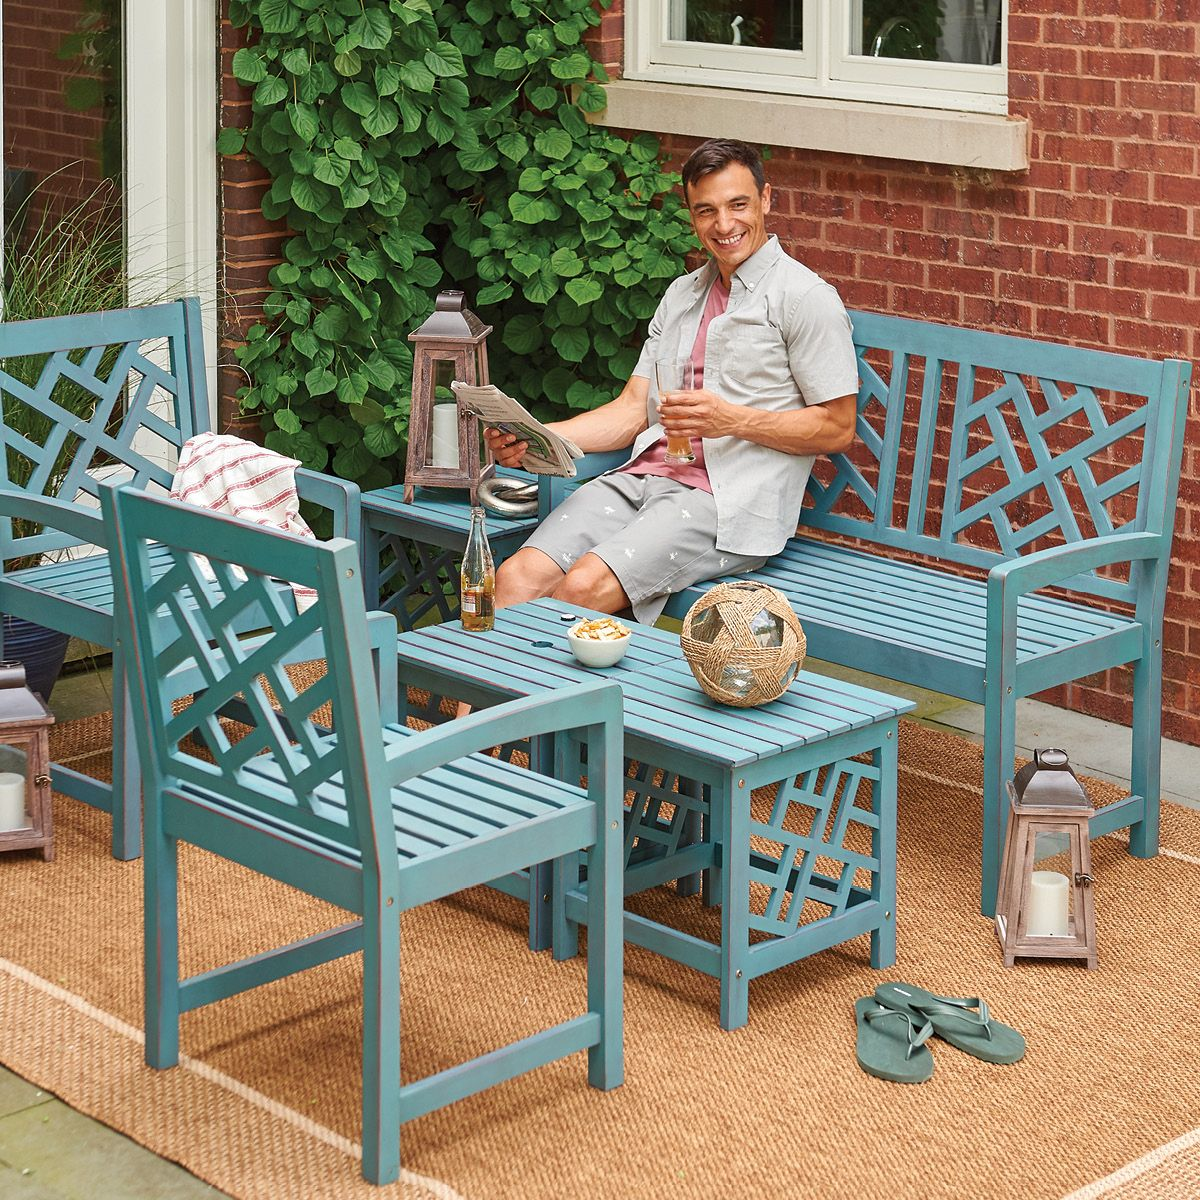 Astounding Patio Furniture And Decor Benson Lumber Hardware Evergreenethics Interior Chair Design Evergreenethicsorg